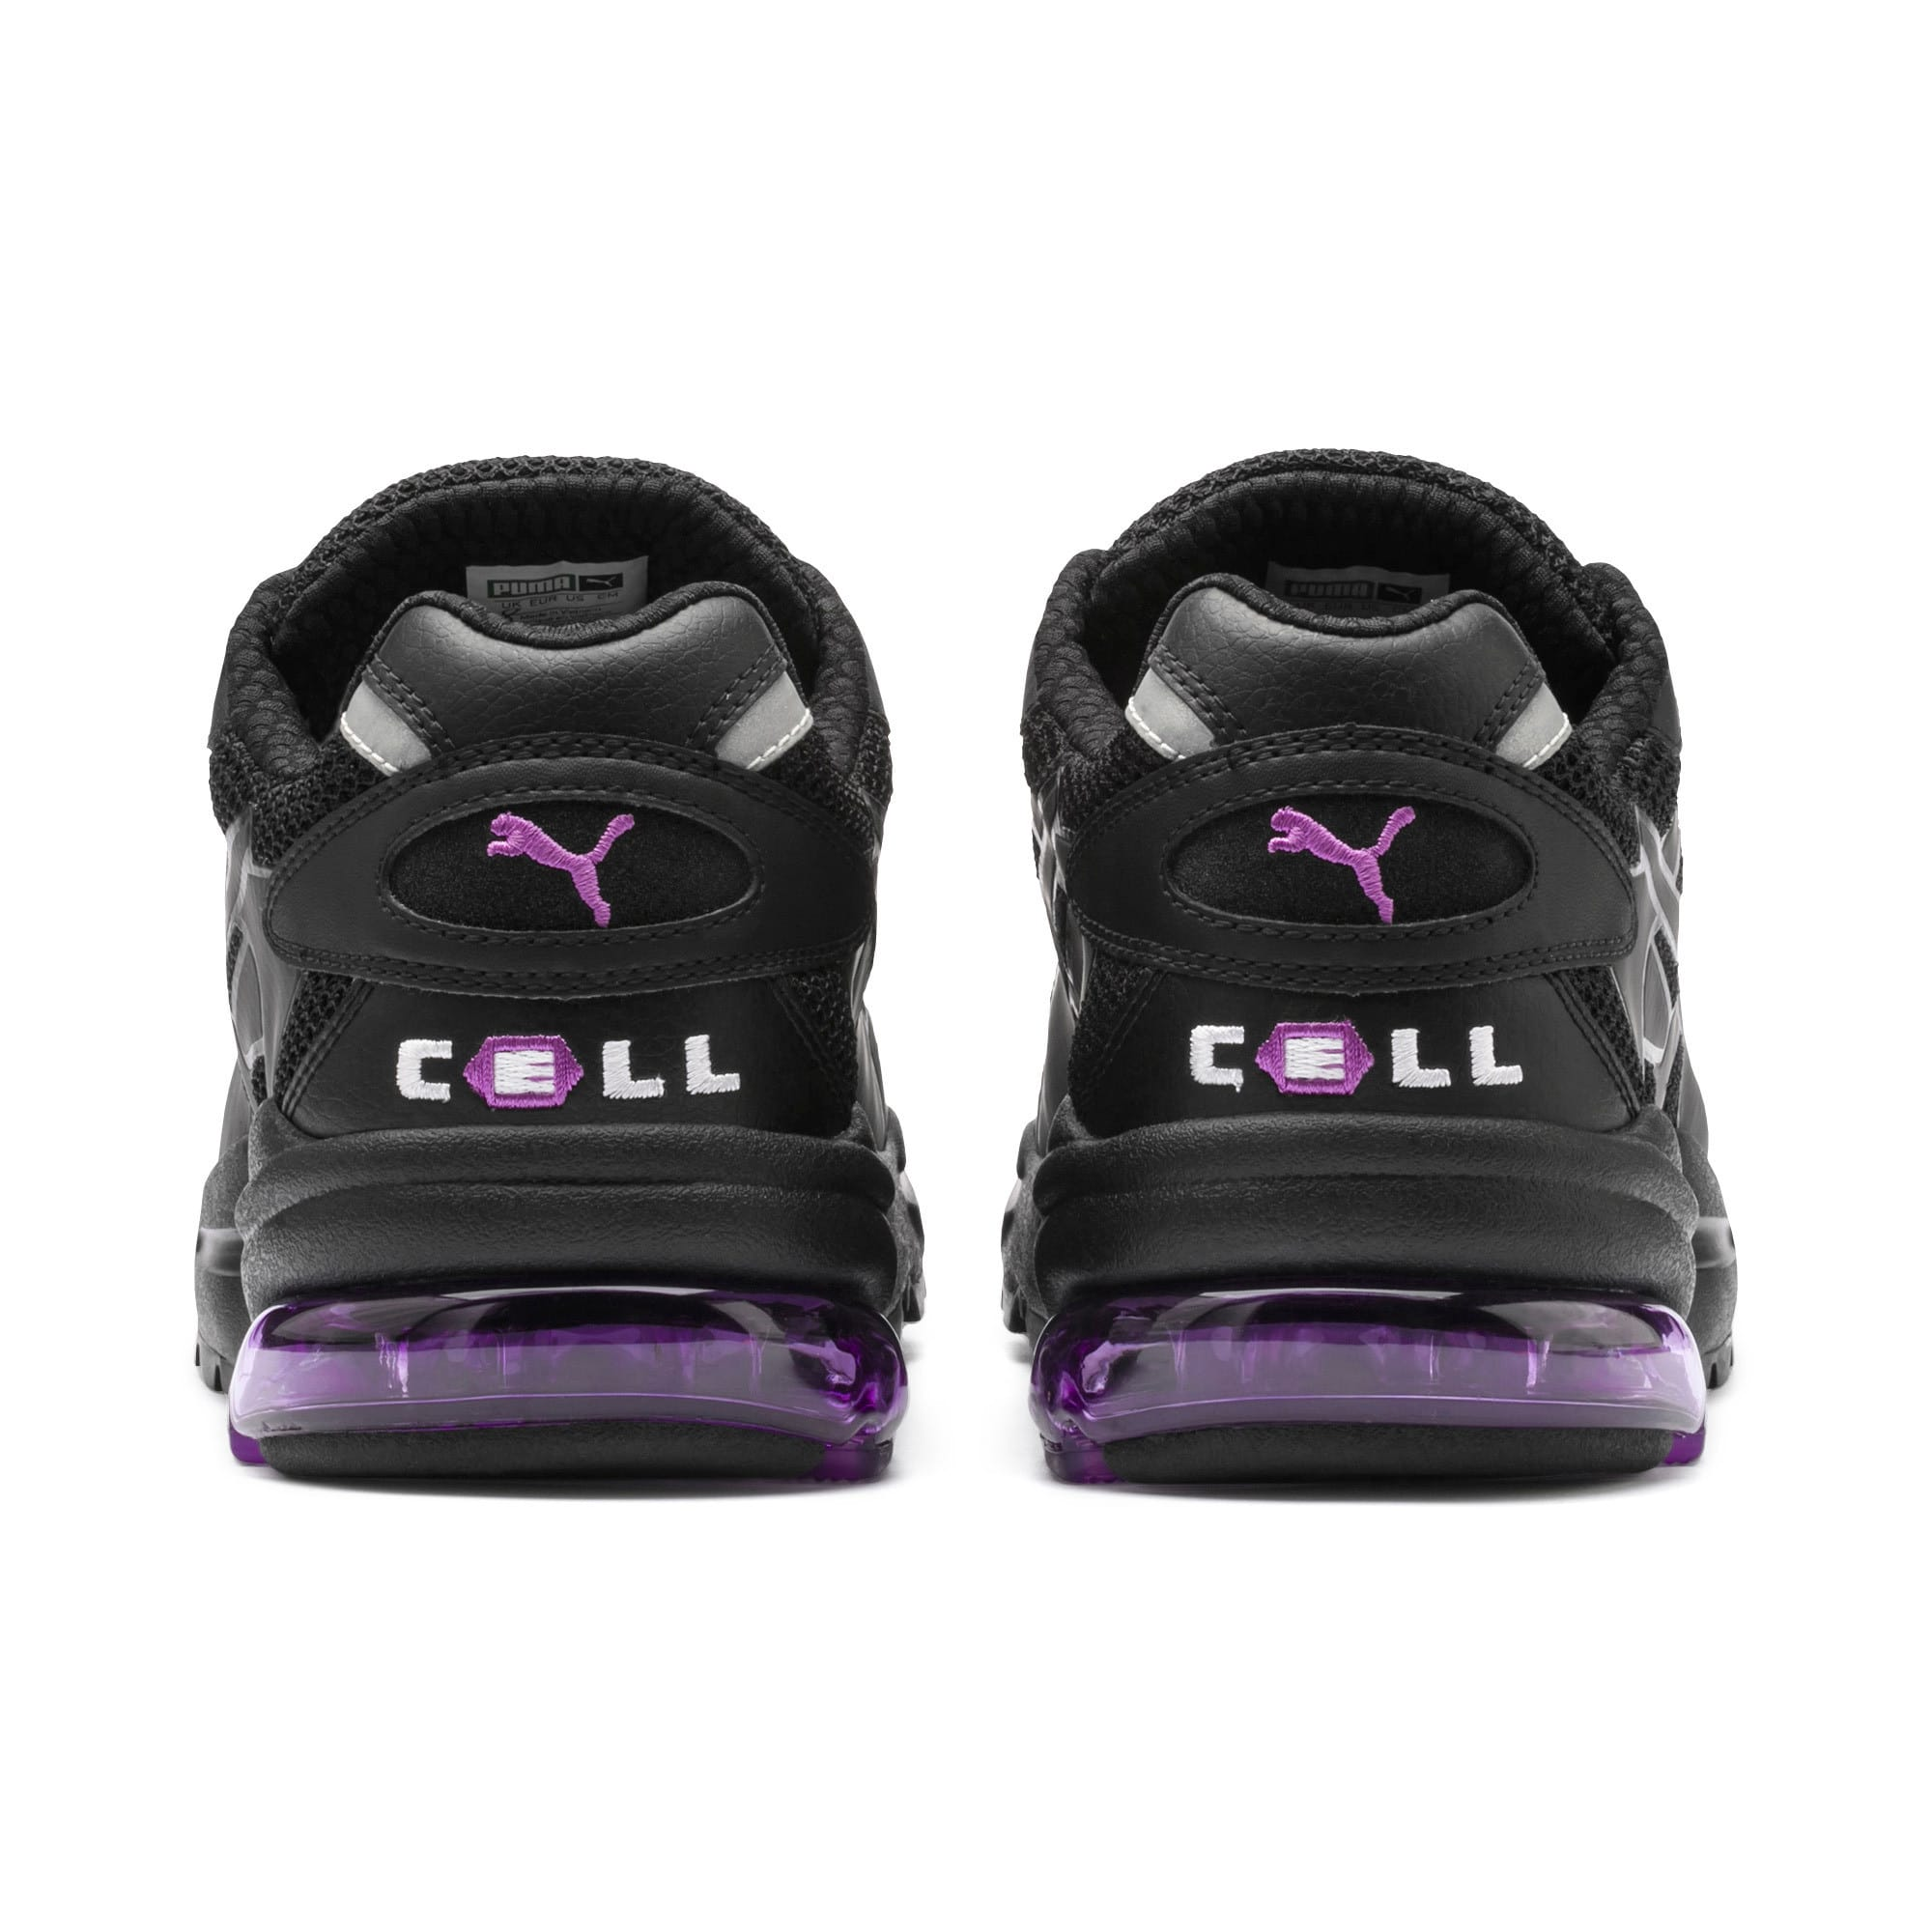 Thumbnail 4 of Basket CELL Alien Kotto, Puma Black-Puma Black, medium